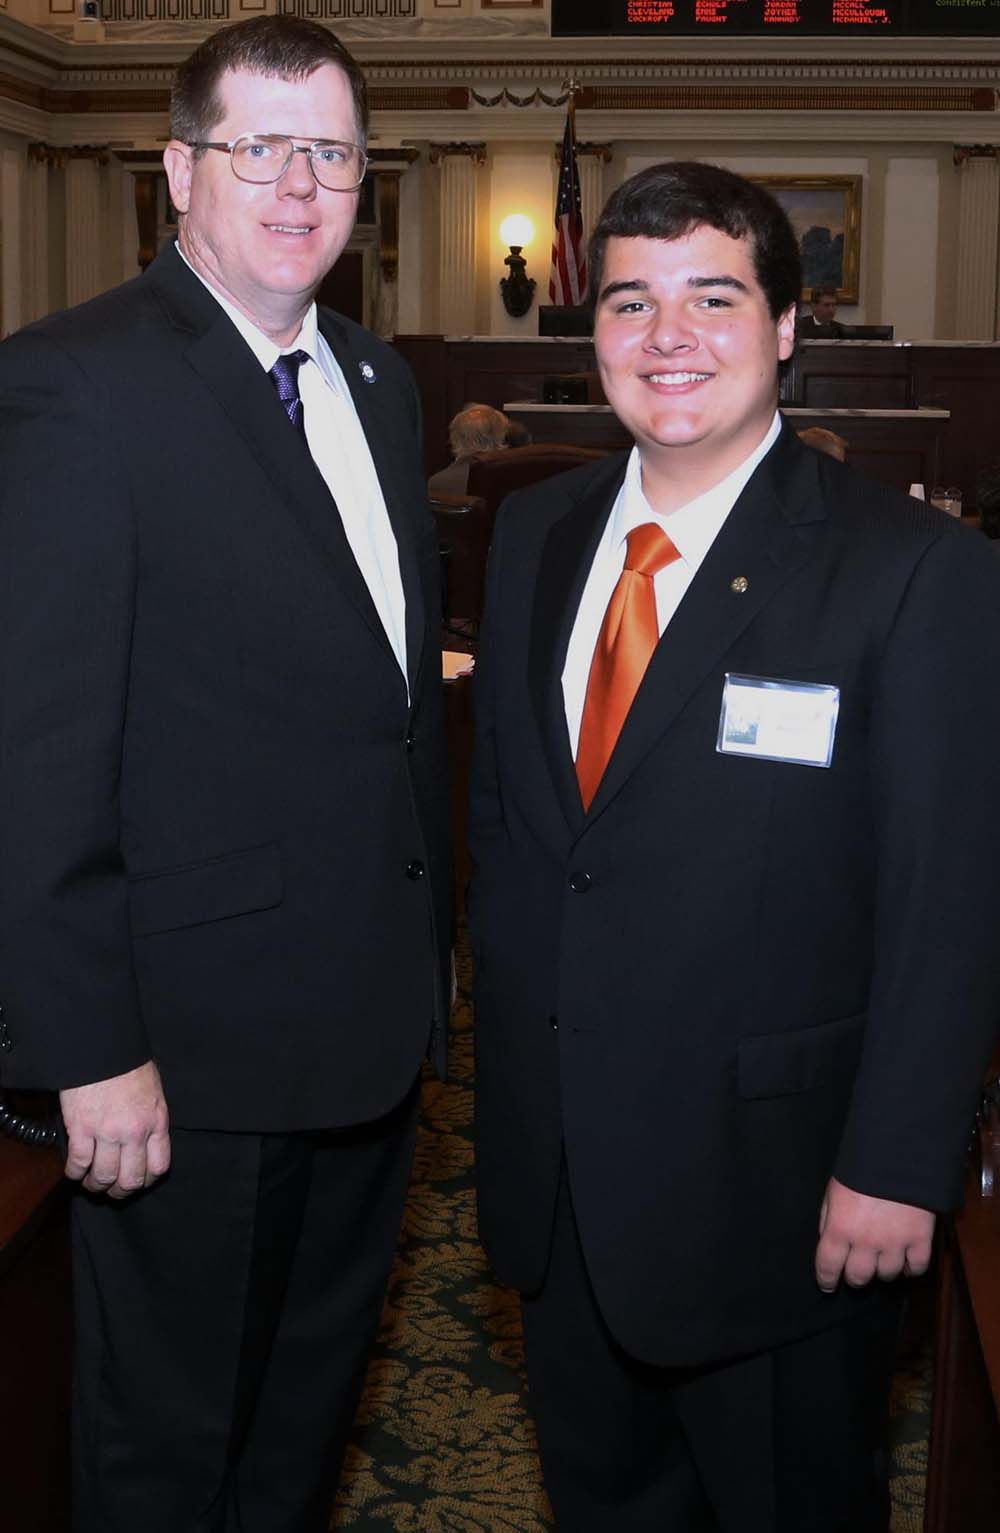 LeFlore senior Isaac Walden, right, served as a page for Rep. James Lockhart